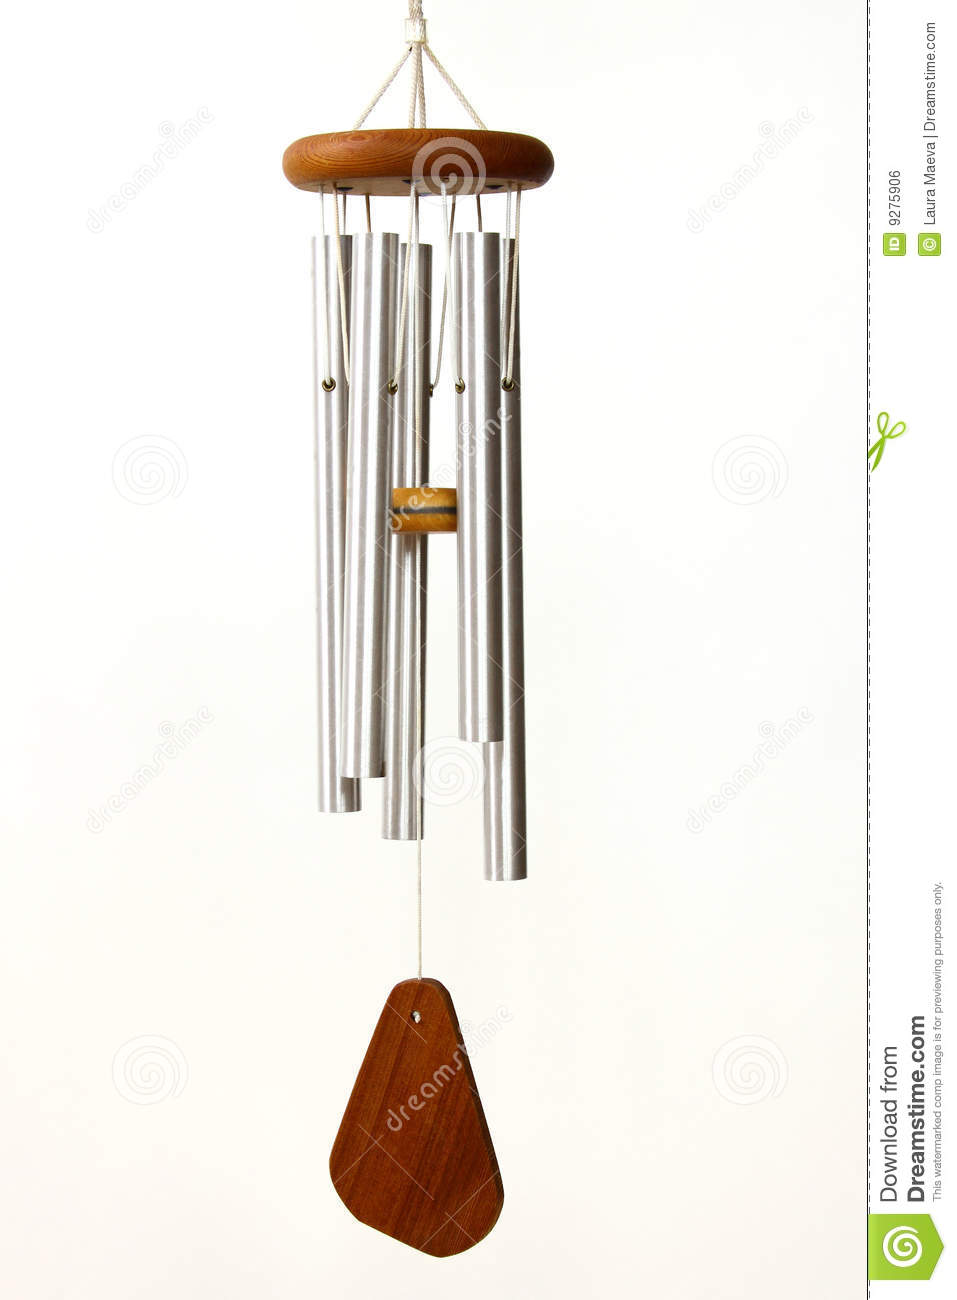 Wind chime clipart.